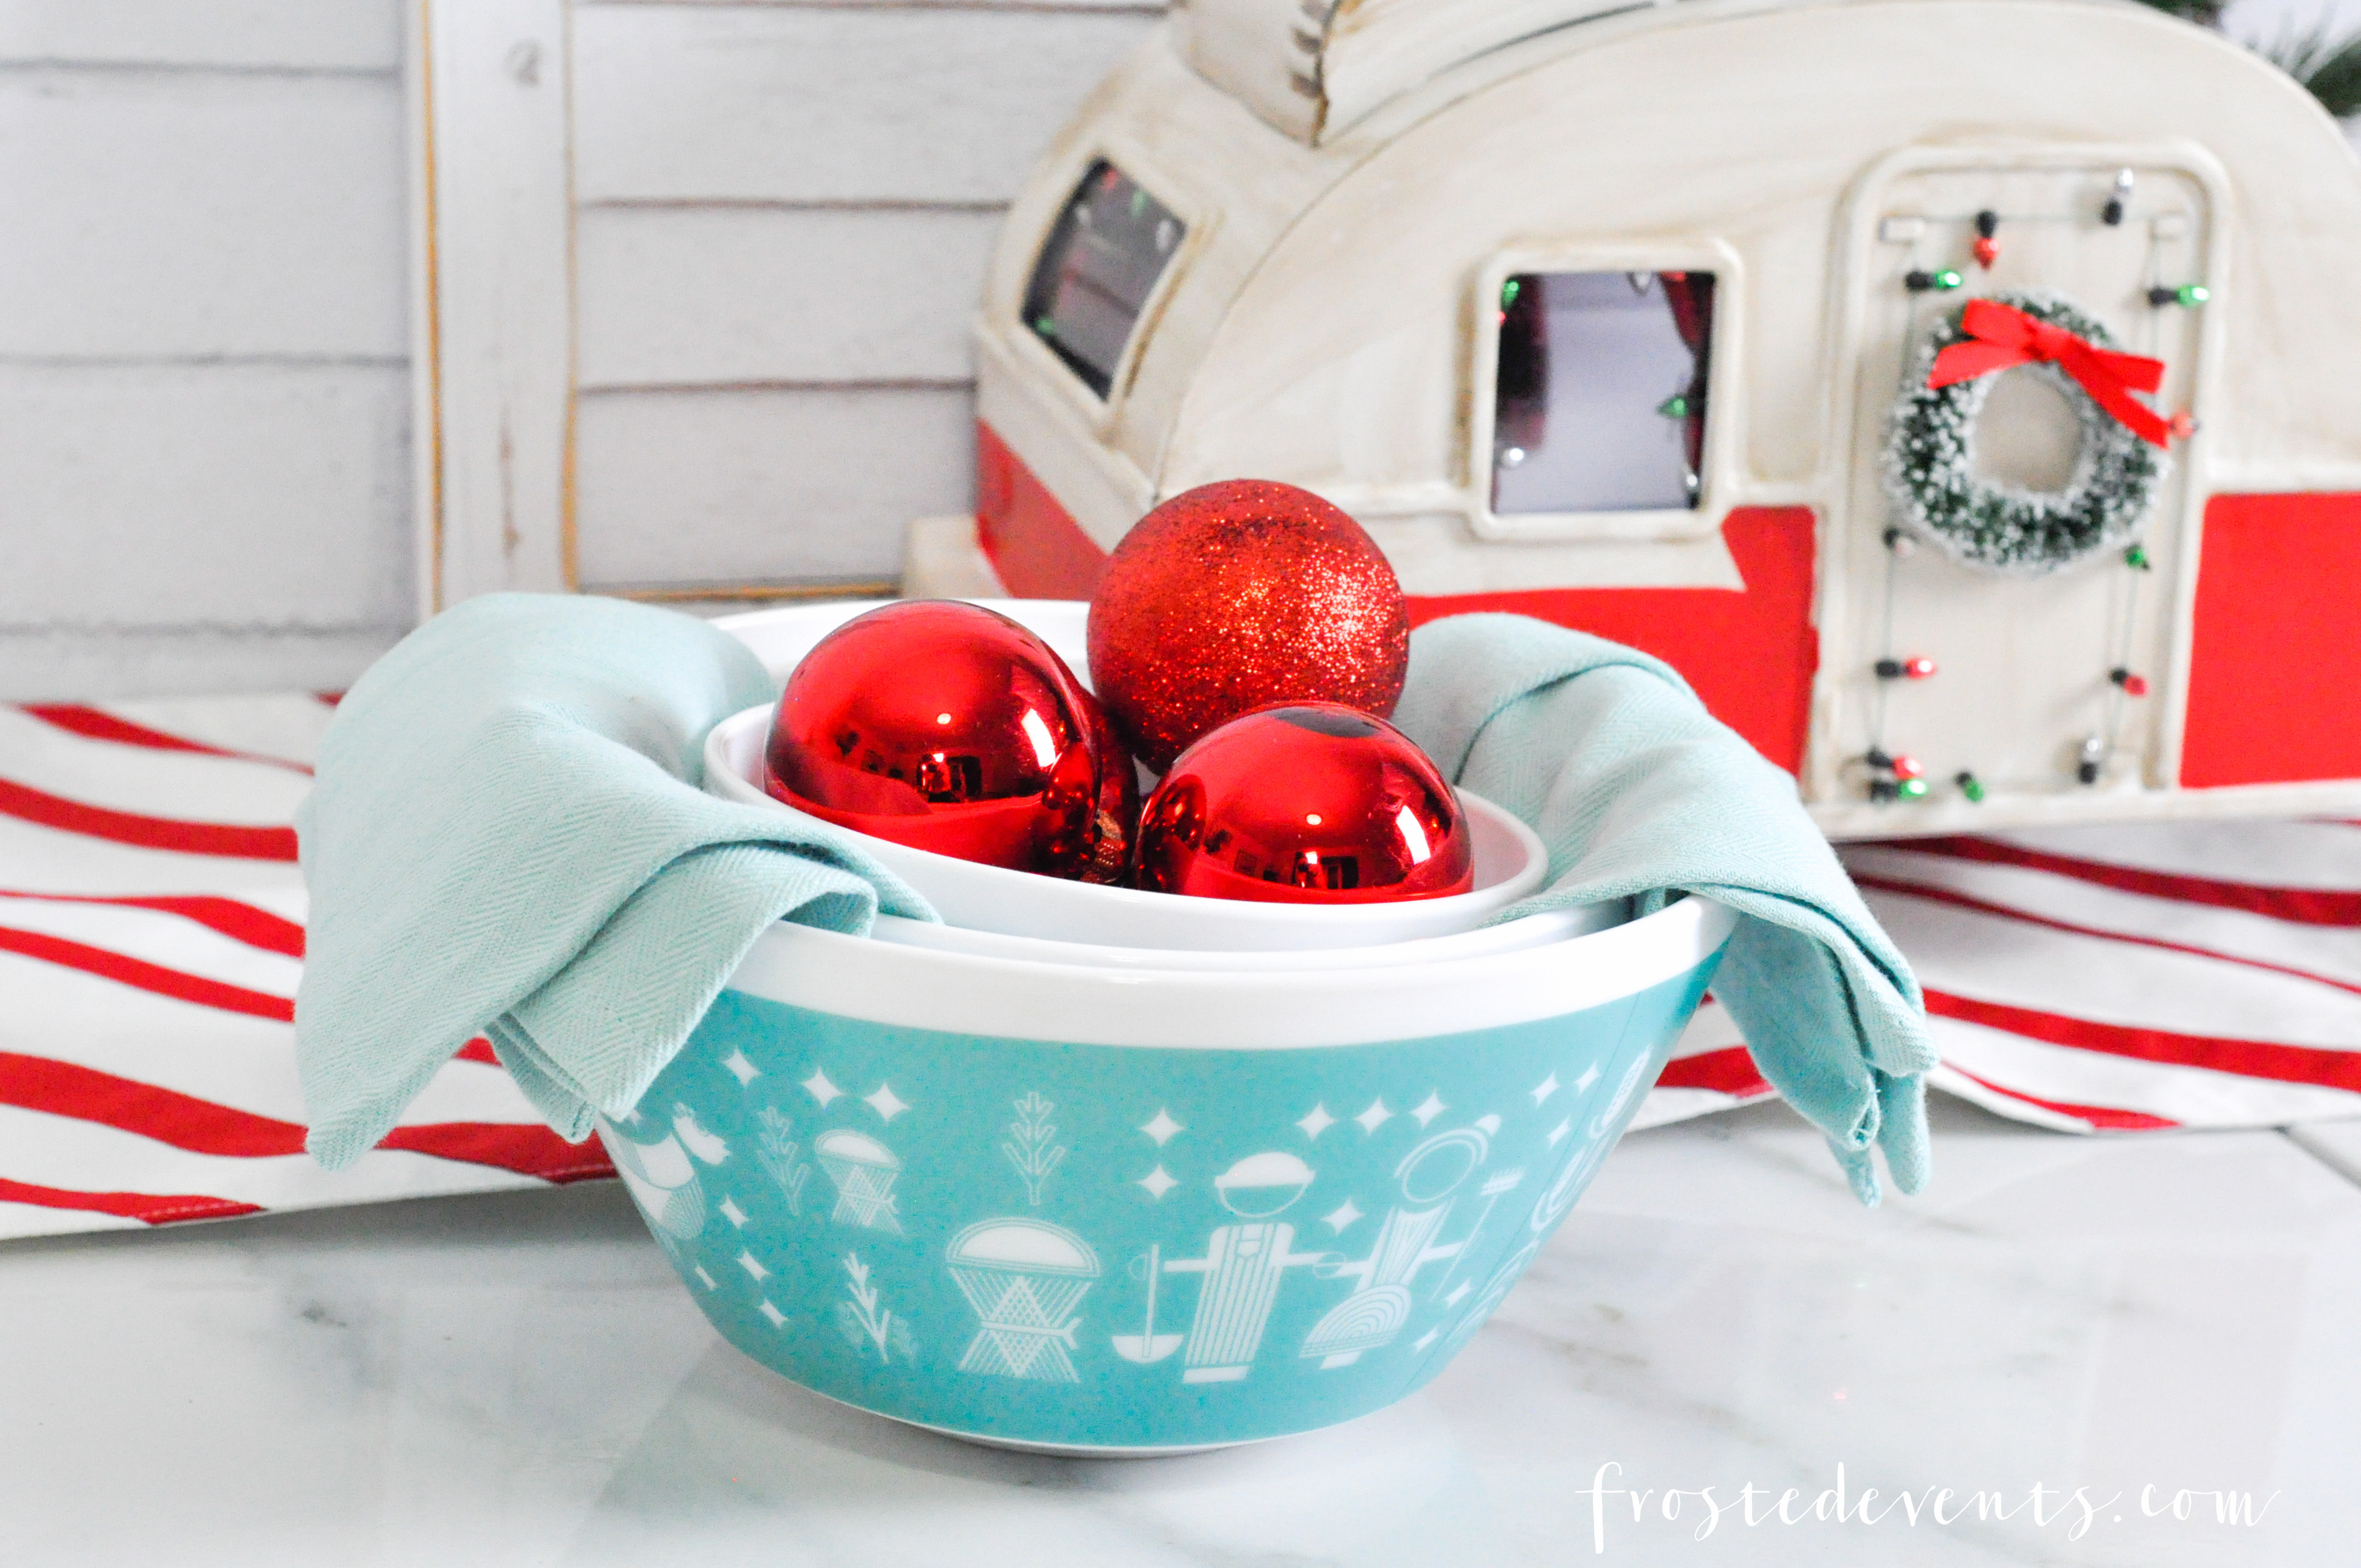 Vintage Charm That Makes a Great Gift for Girlfriends via Misty Nelson @frostedevents frostedmomscom